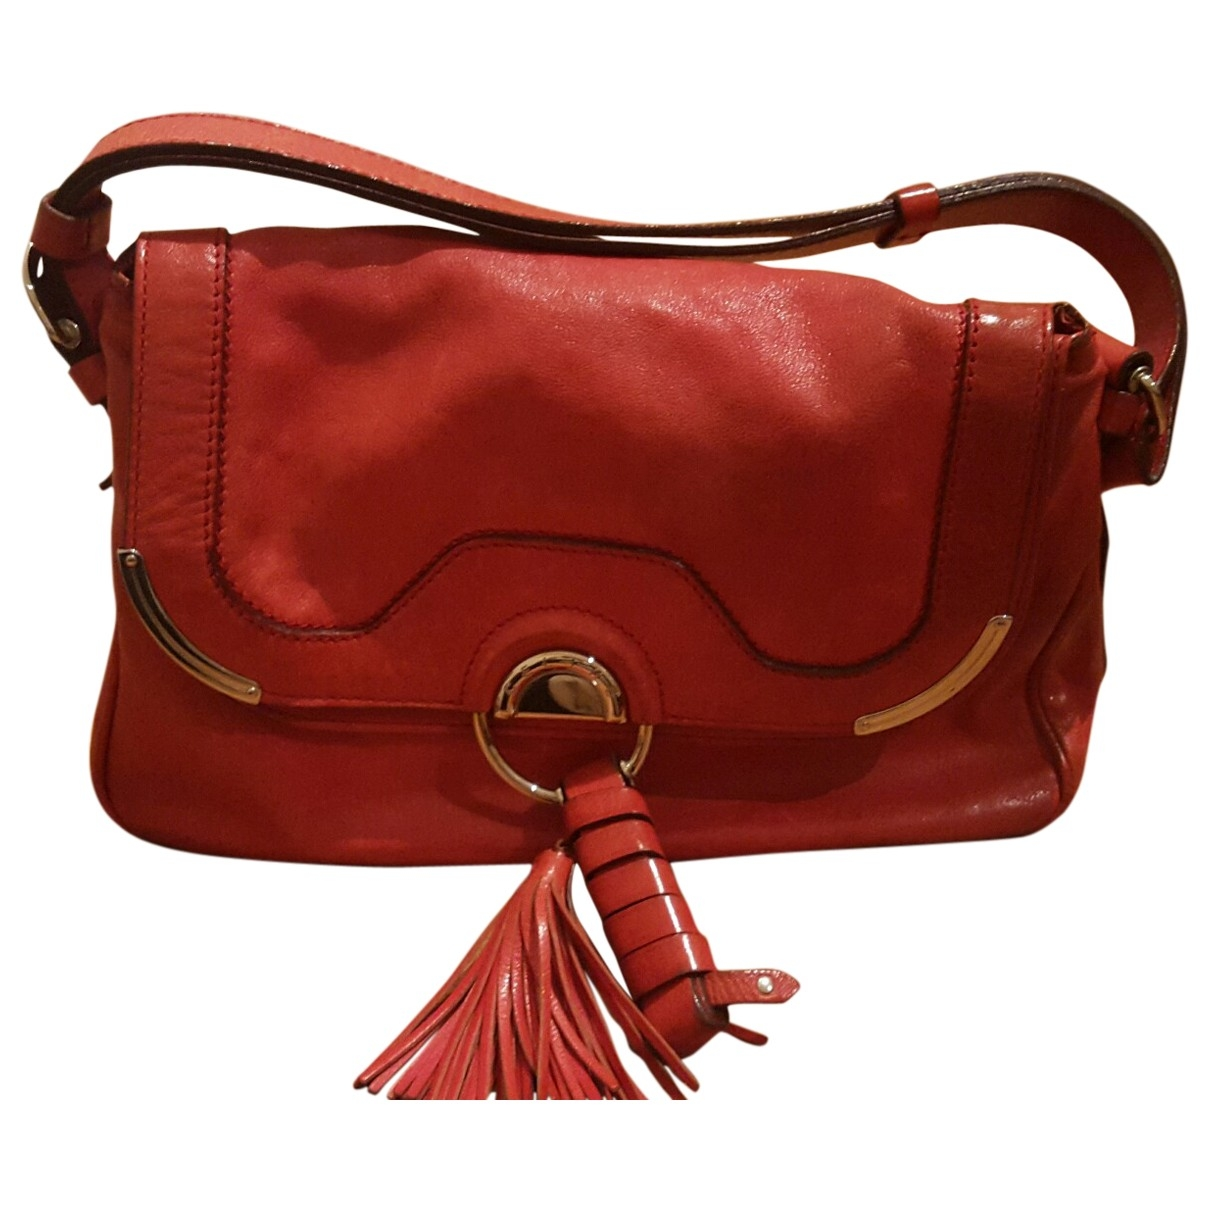 Celine \N Red Leather handbag for Women \N